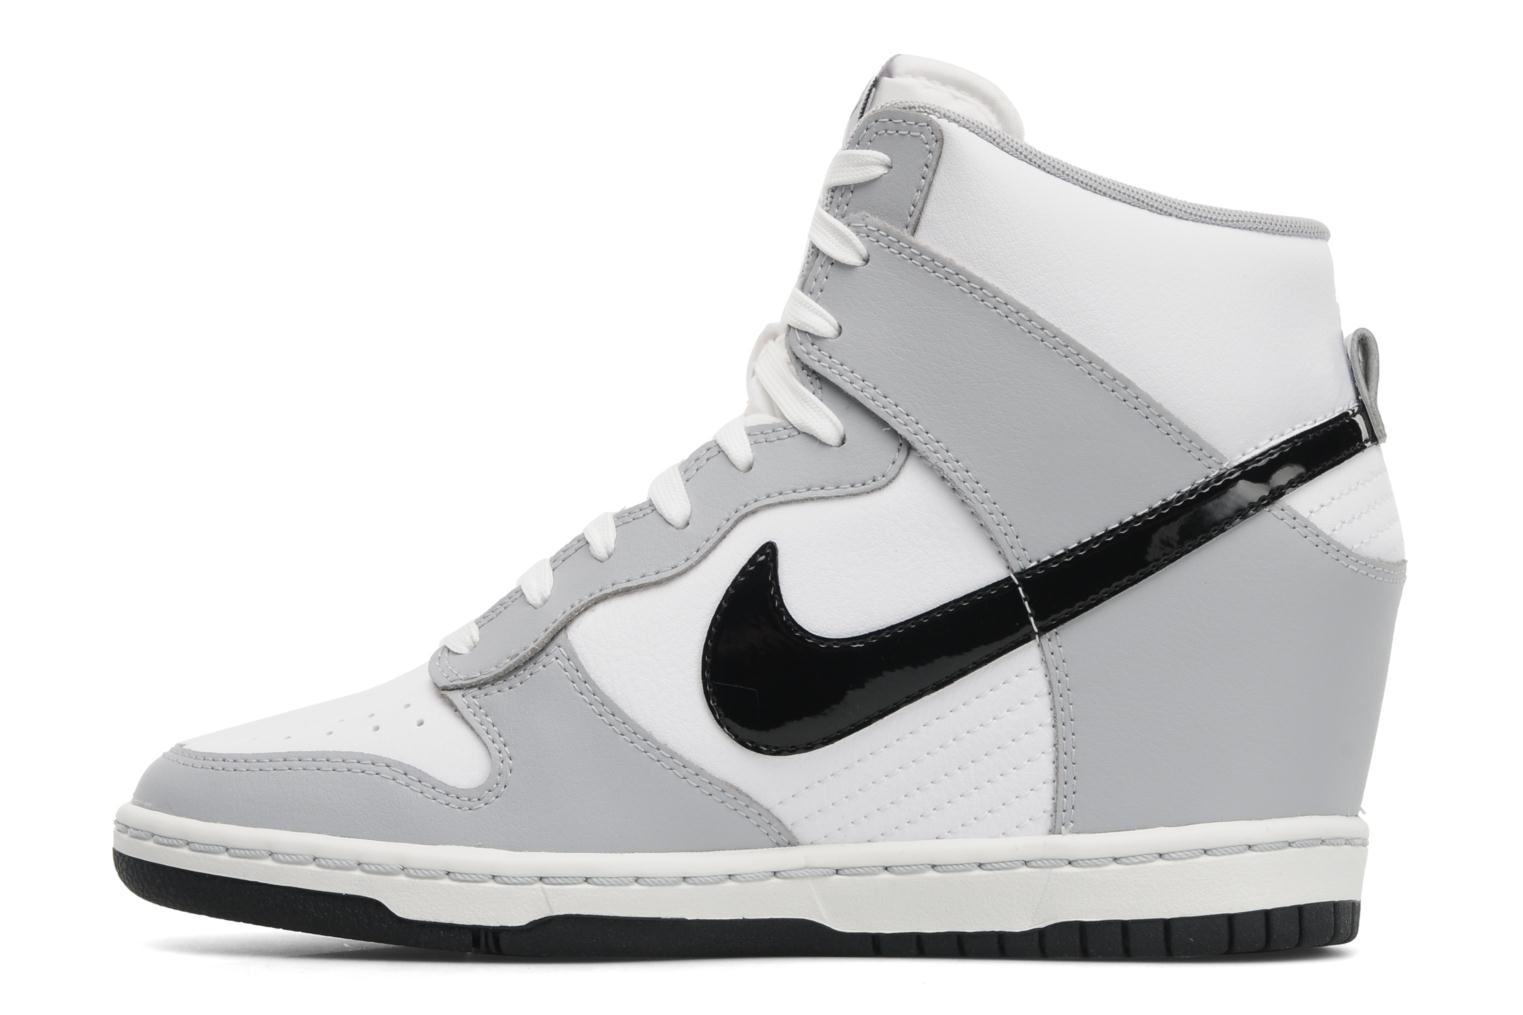 Dunk sky high Wolf Grey/Black-White